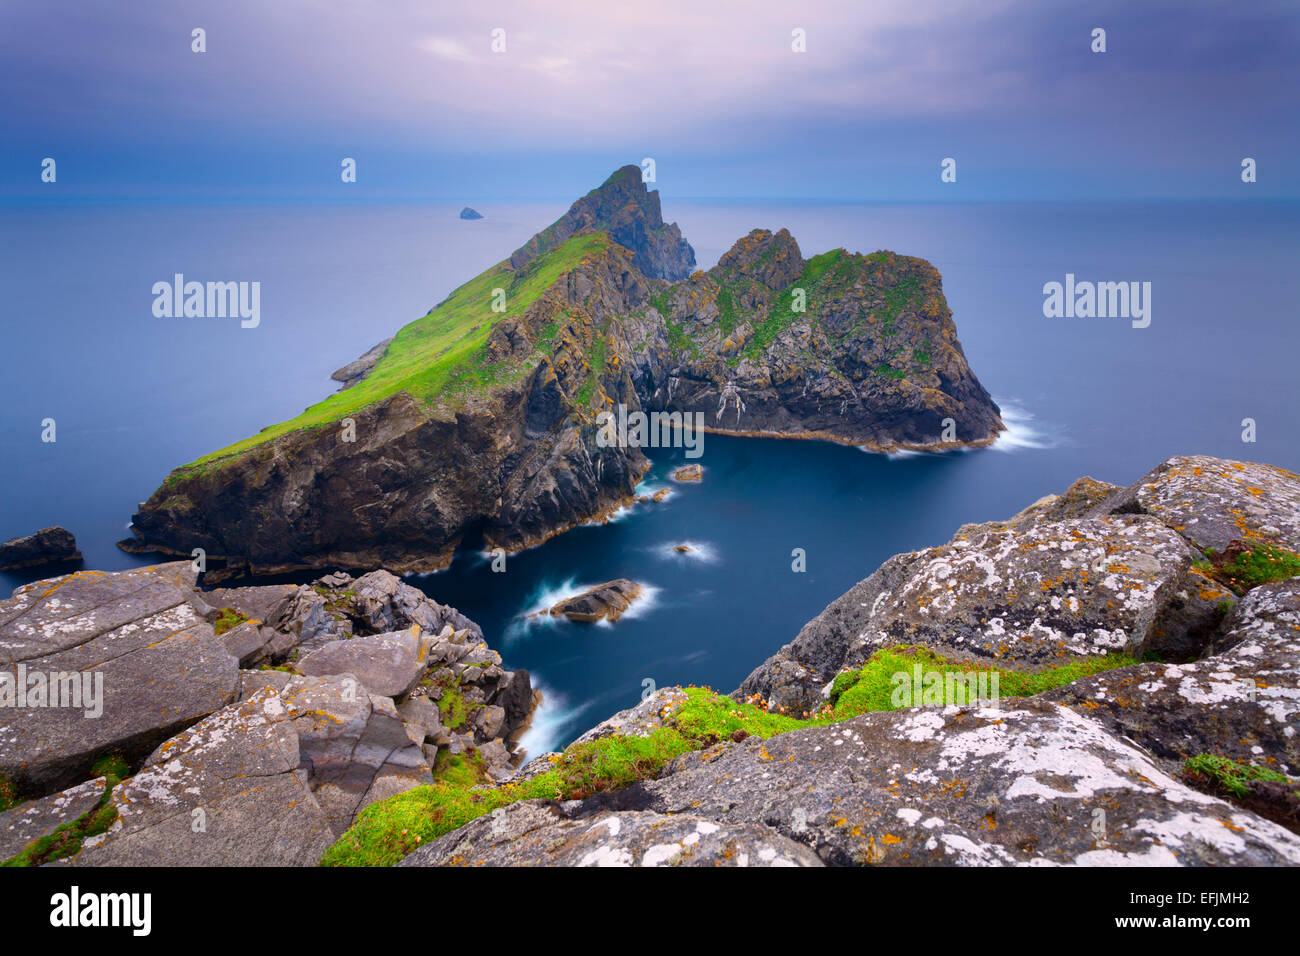 Dun at sunset, as seen from the cliffs on Ruaival, Hirta, St Kilda - Stock Image